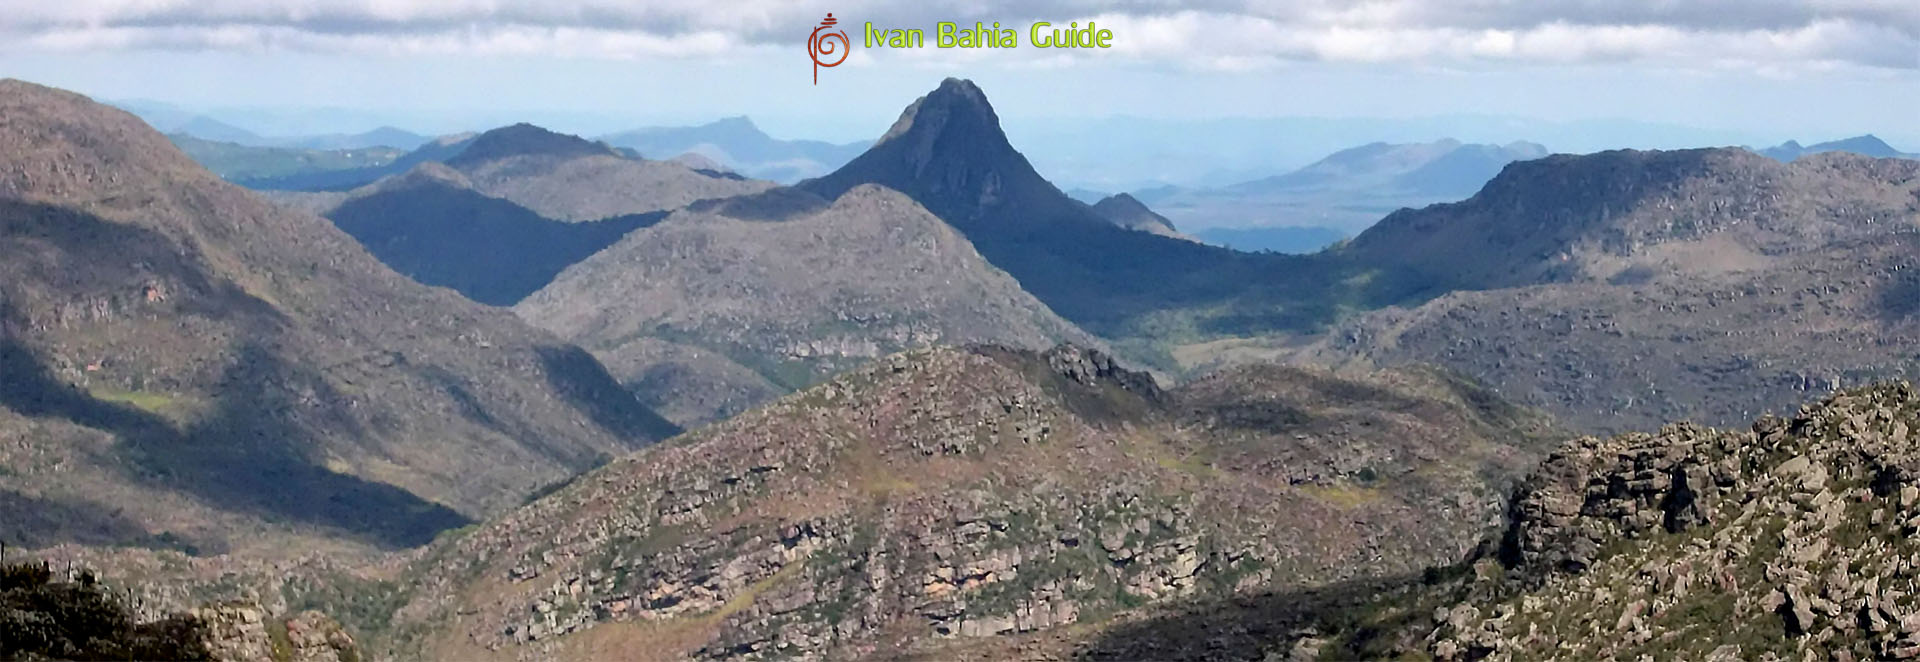 Ivan Bahia tour-guide / takes you to the roof of Bahia in Chapada Diamantina National Park for a trekking to the highest peaks (+2000m) of the North-East of Brazil